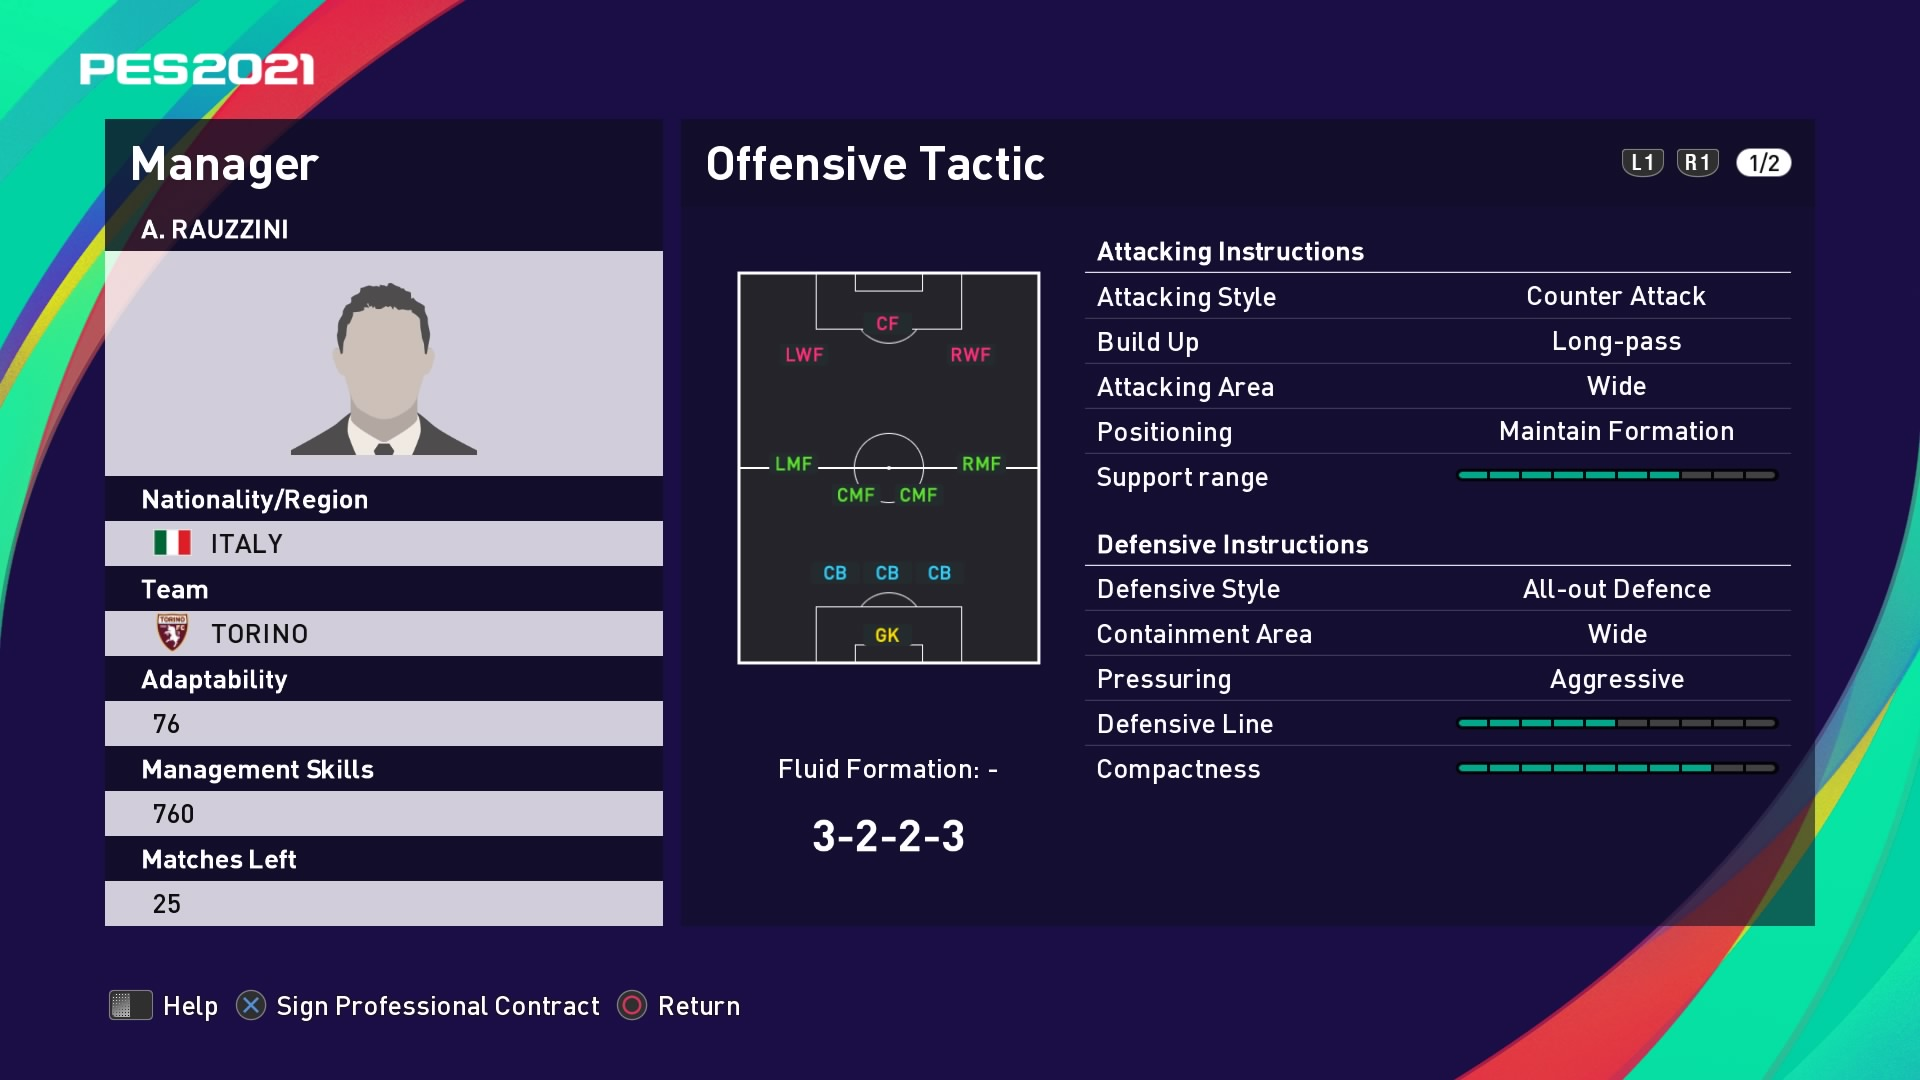 A. Rauzzini (Marco Giampaolo) Offensive Tactic in PES 2021 myClub